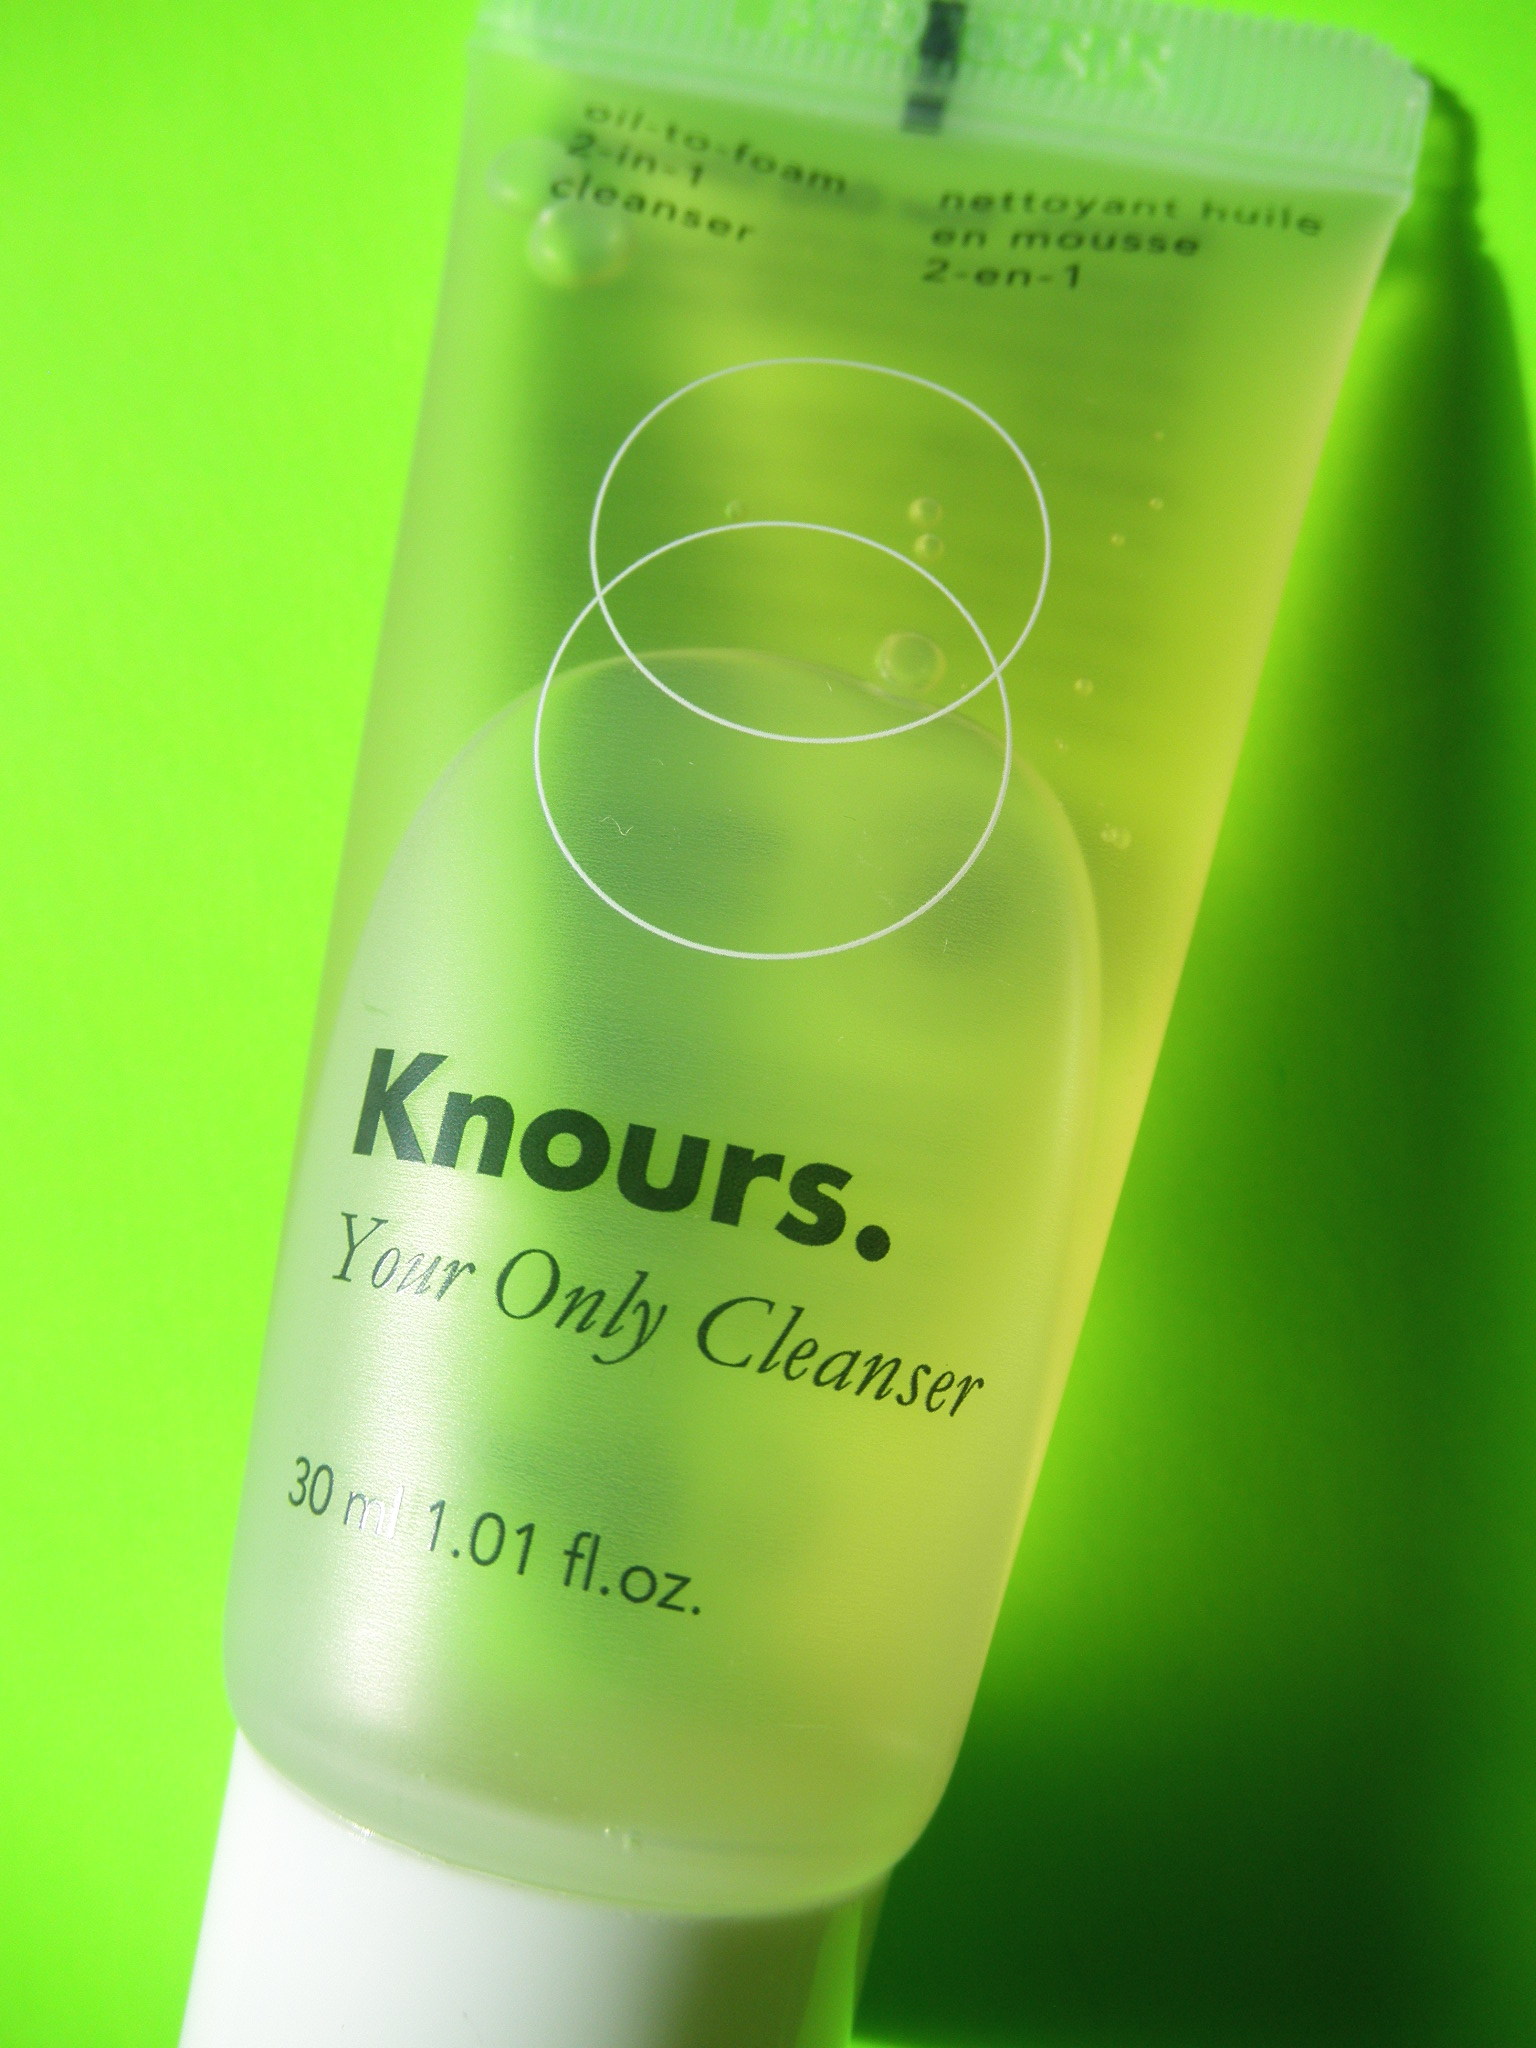 KNOURS. - YOUR ONLY CLEANSER -